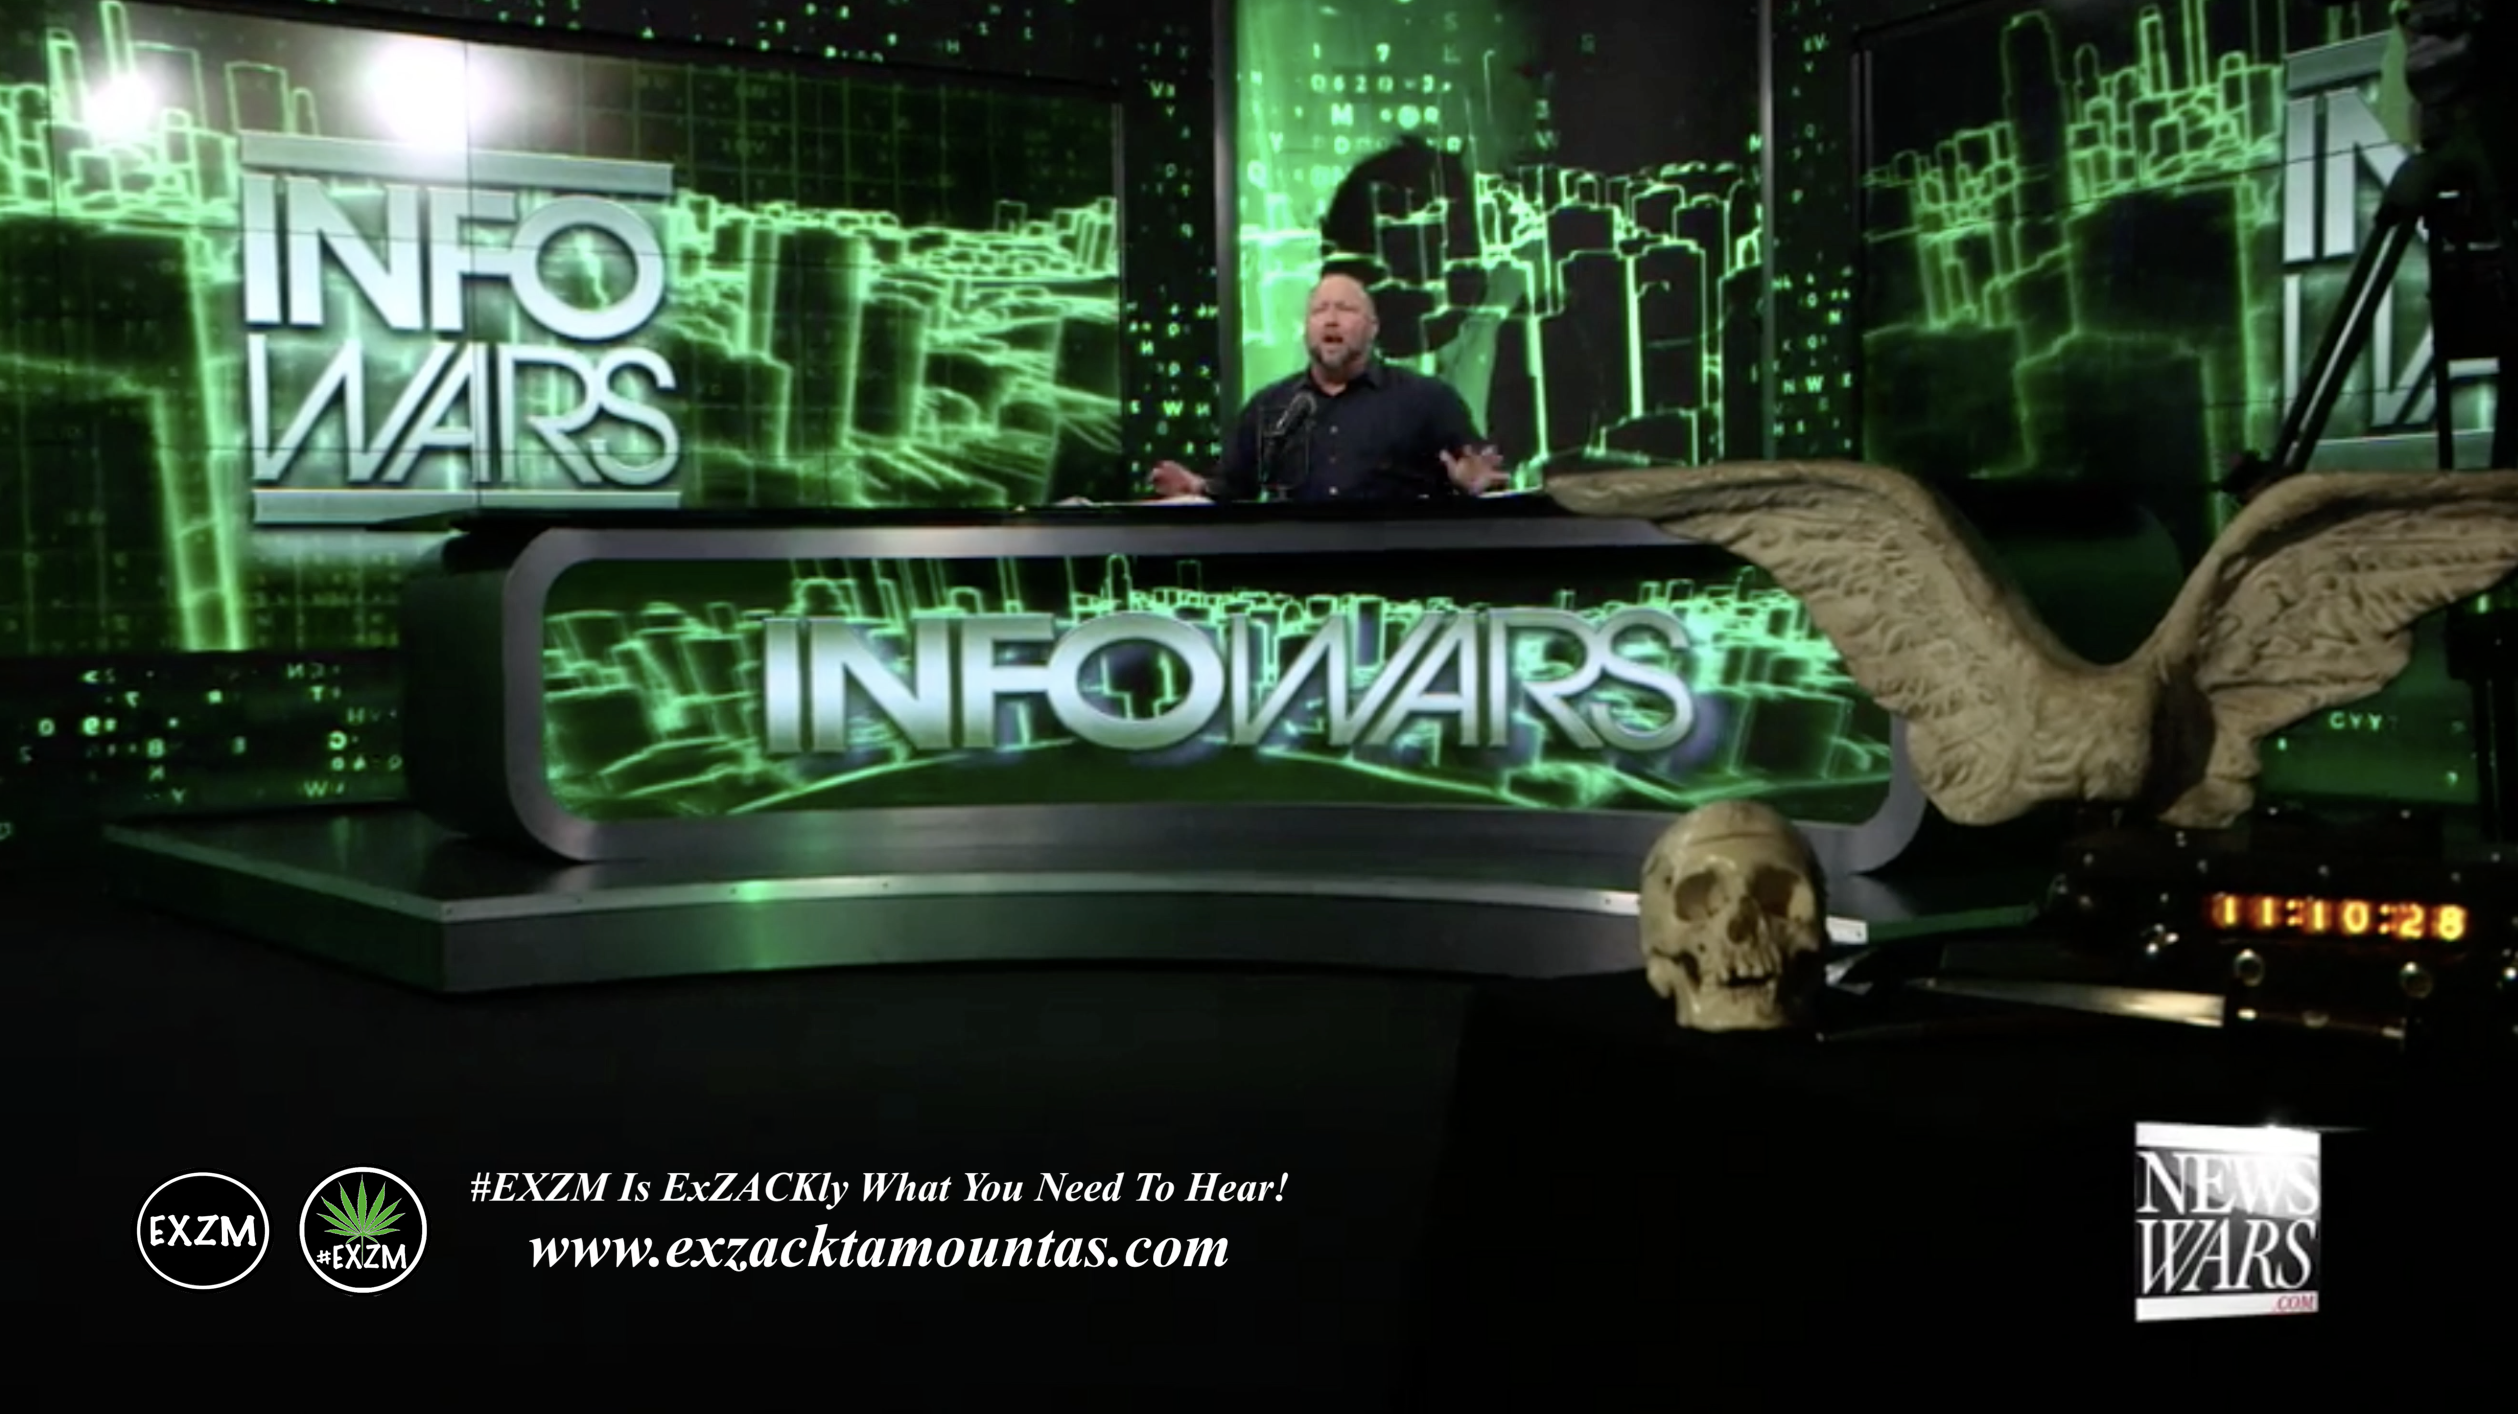 Alex Jones Live Infowars Studio Human Skull Angel Wings EXZM Zack Mount March 3rd 2021 copy